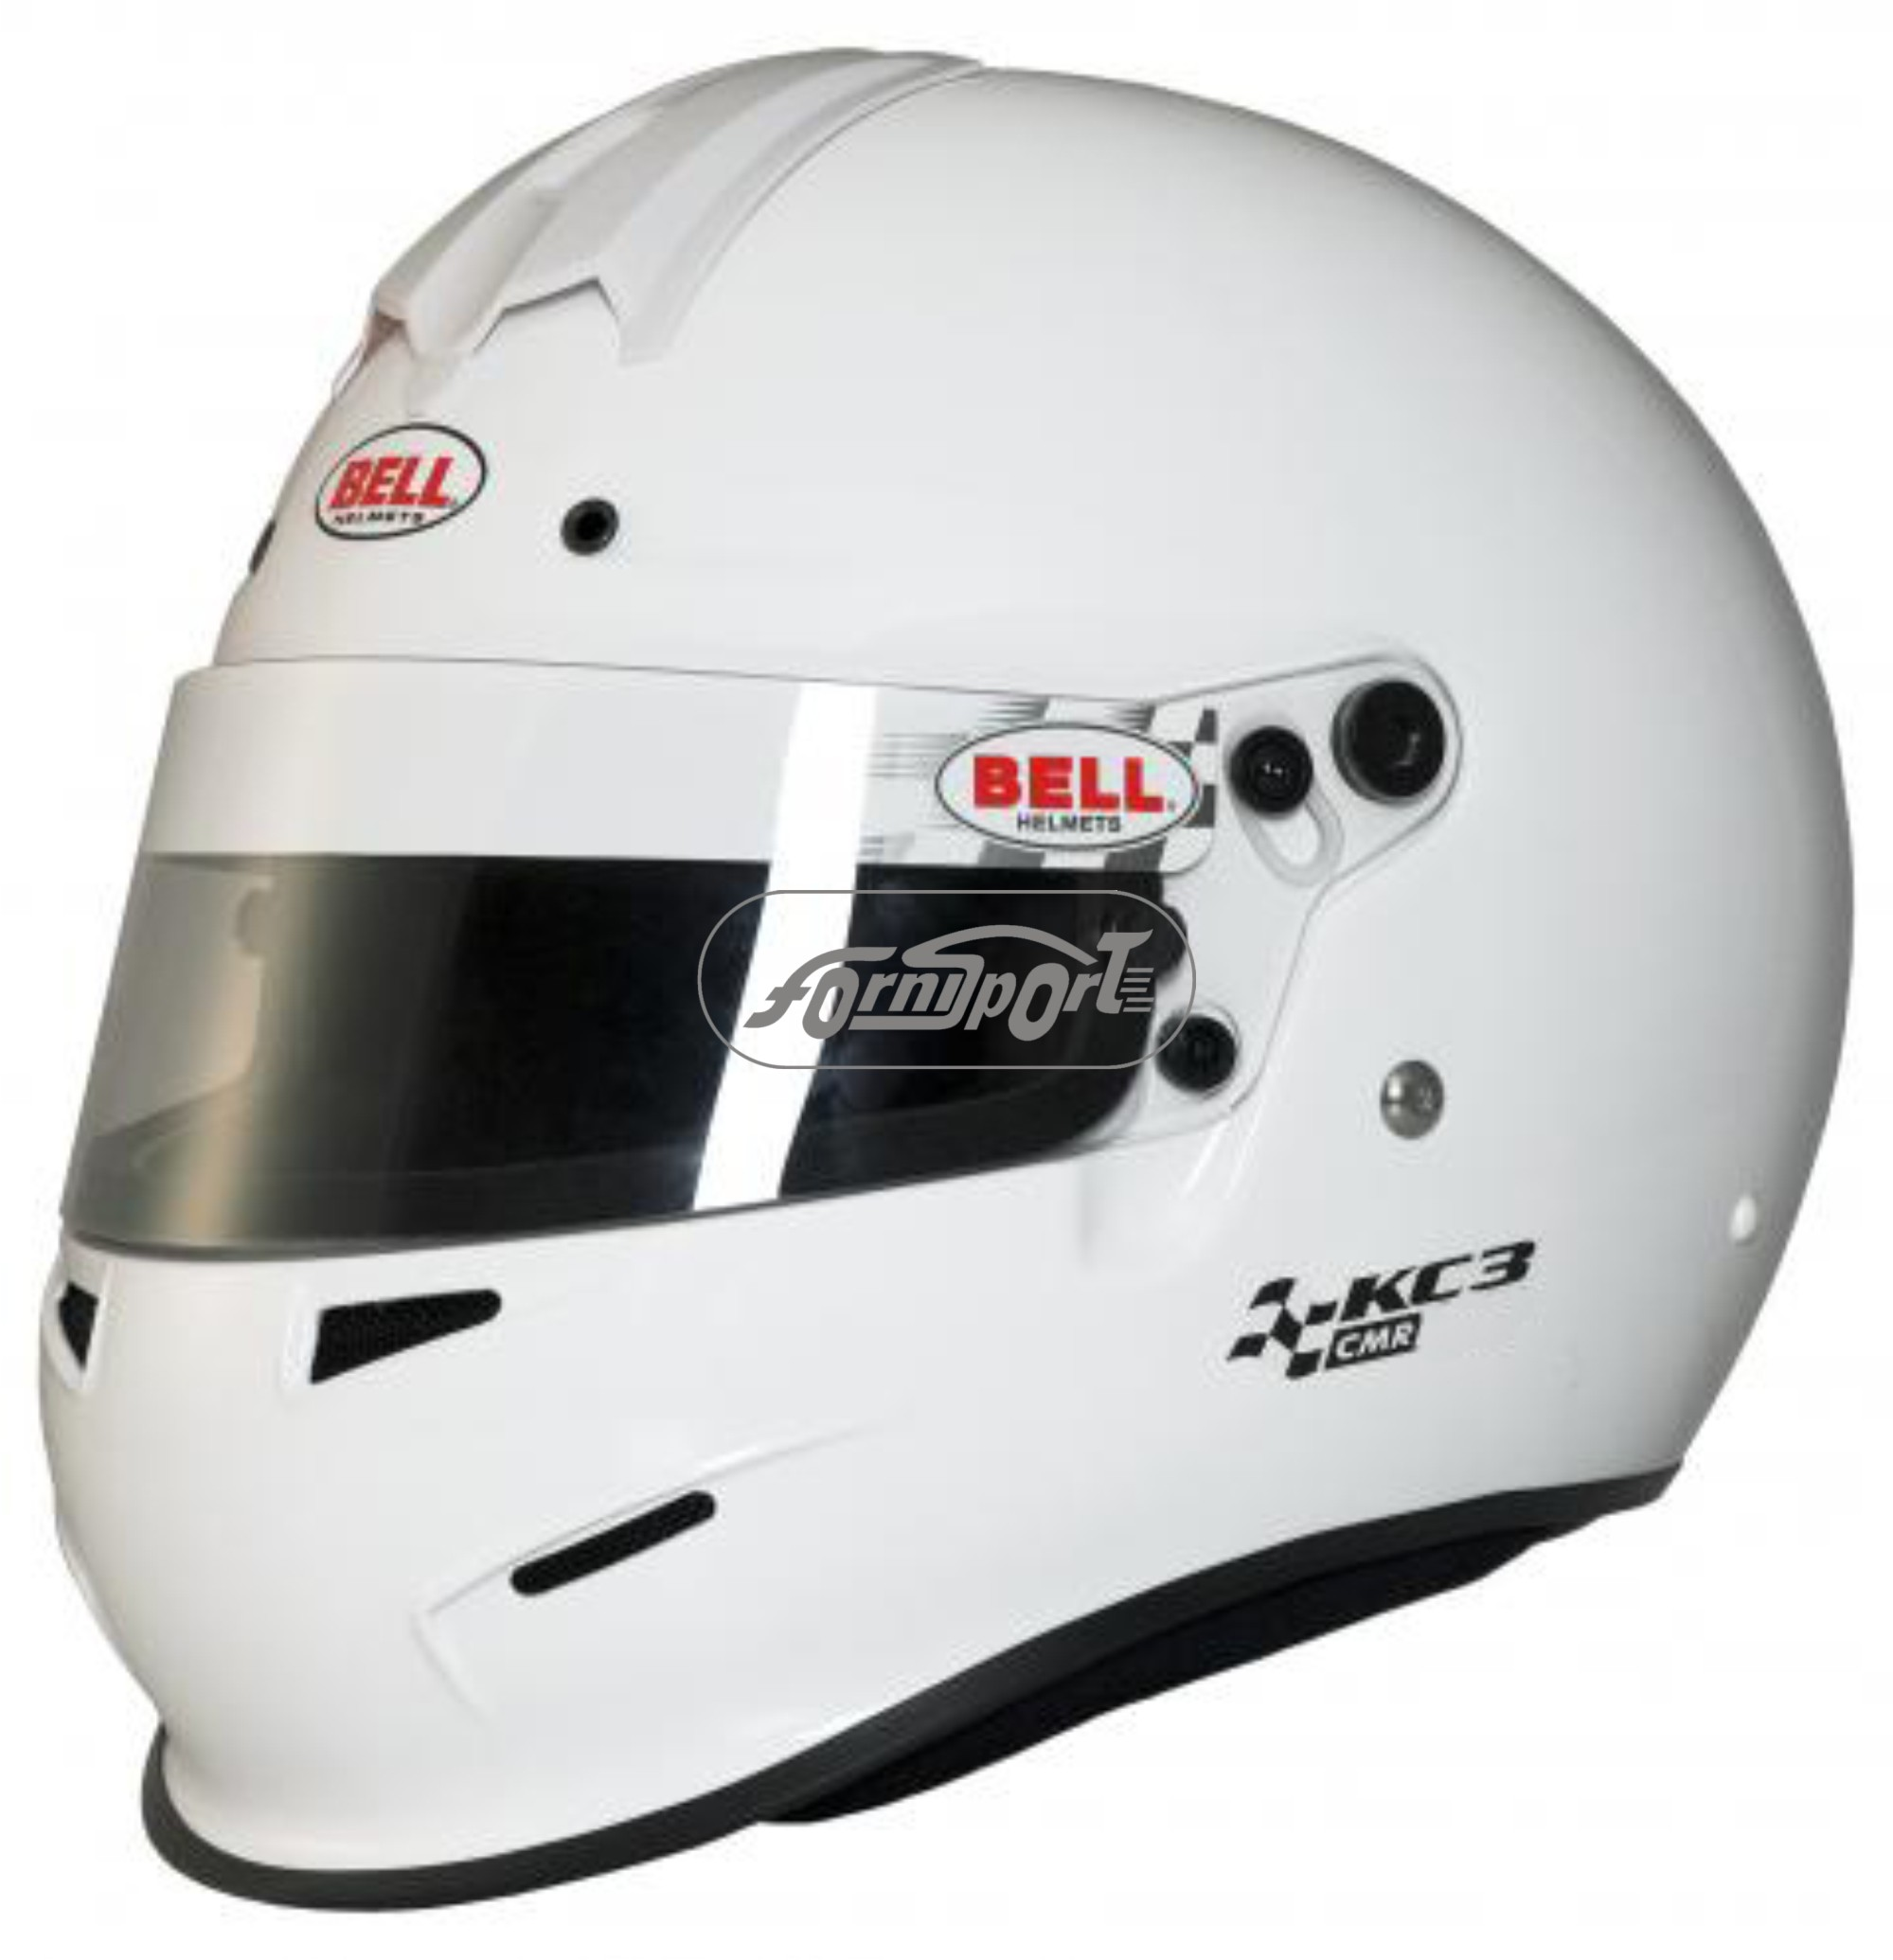 Casco FIA BELL Integral Hom KC3 T55